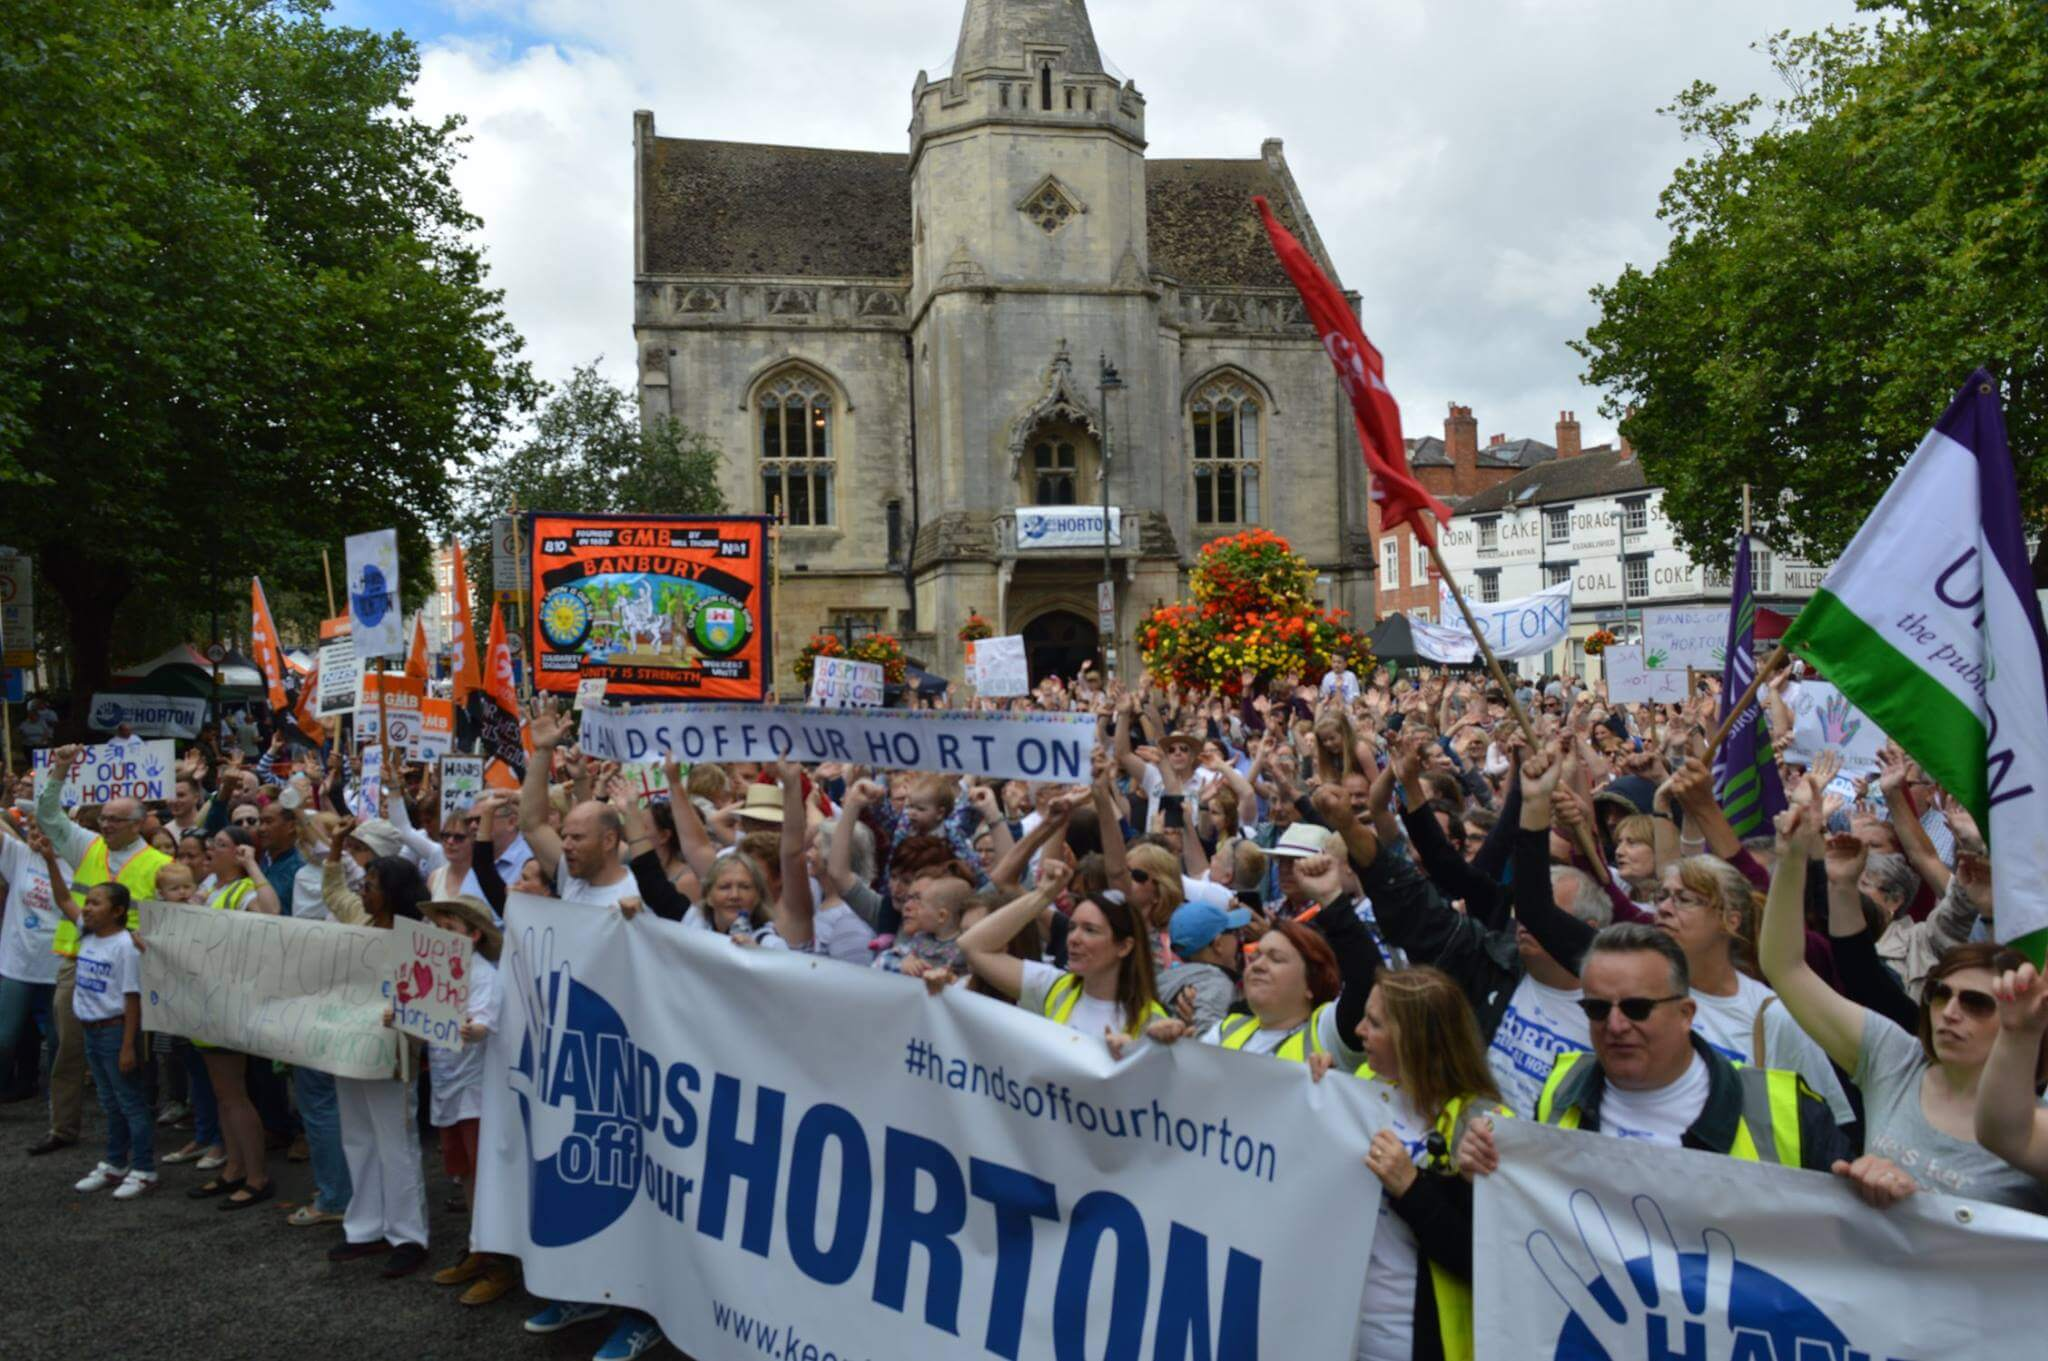 Hands Around the Horton protest 21 Aug 2016